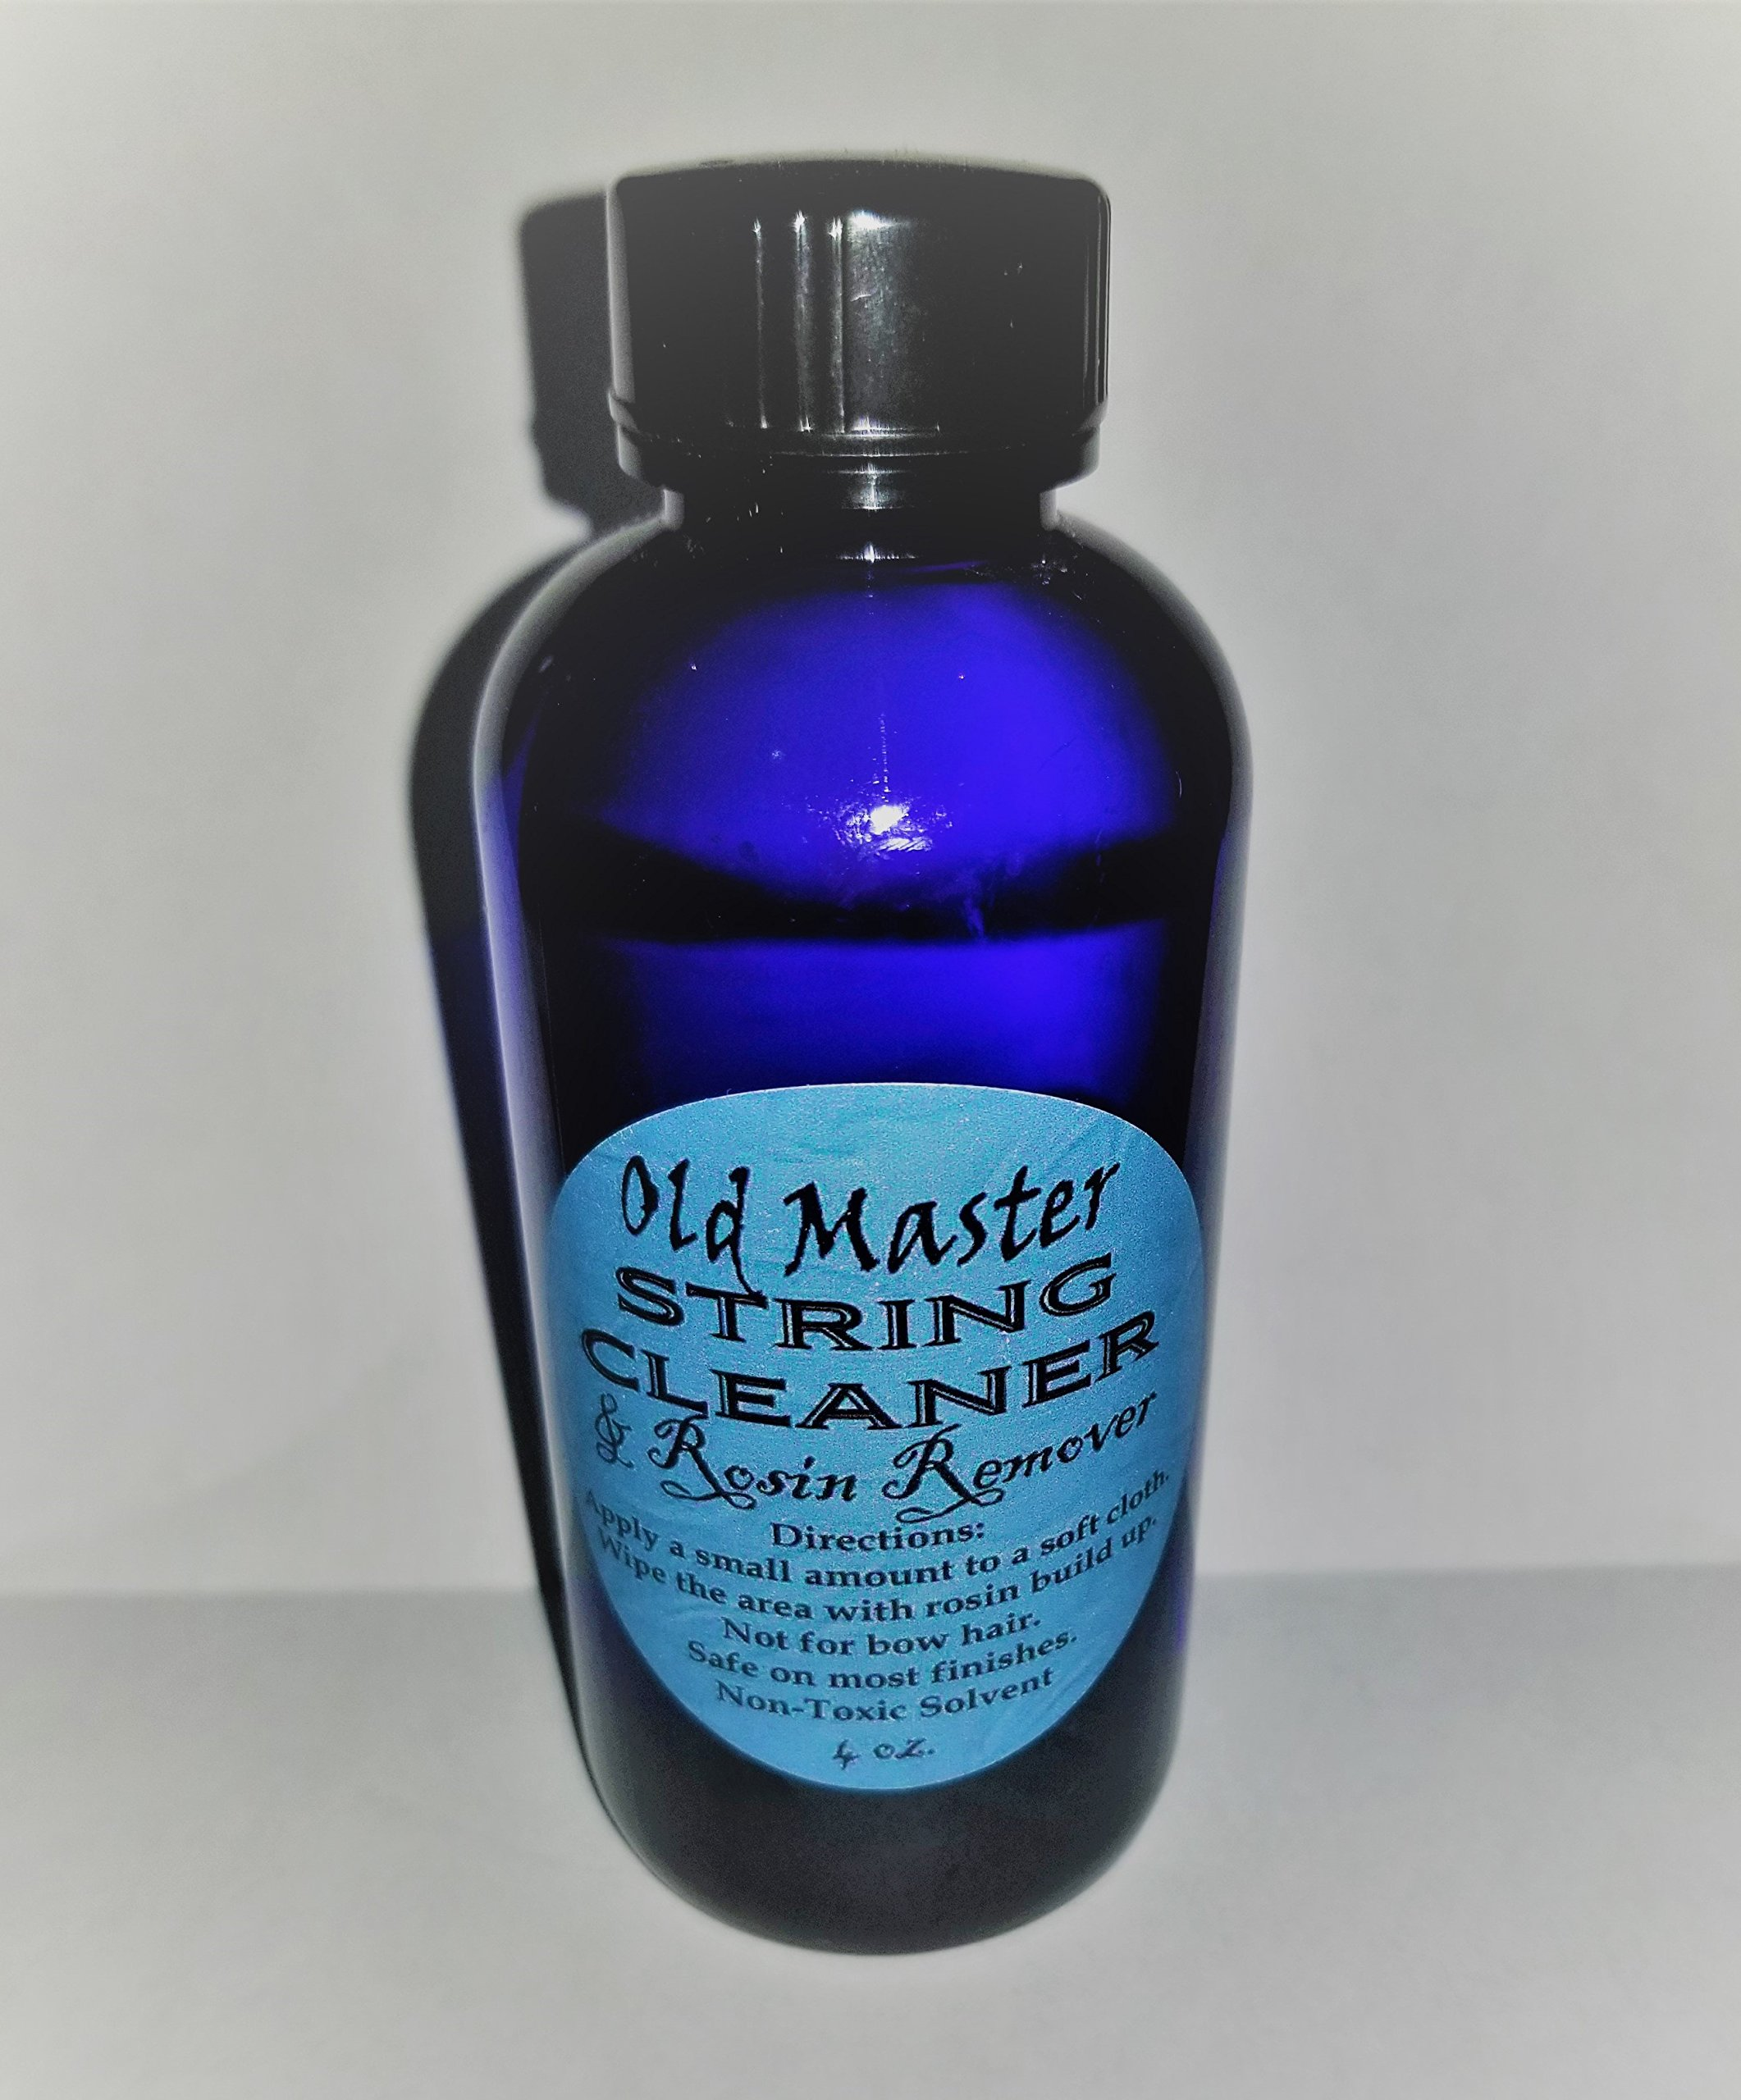 NEW LARGE SIZE - String Cleaner and Rosin Remover - #1 Seller